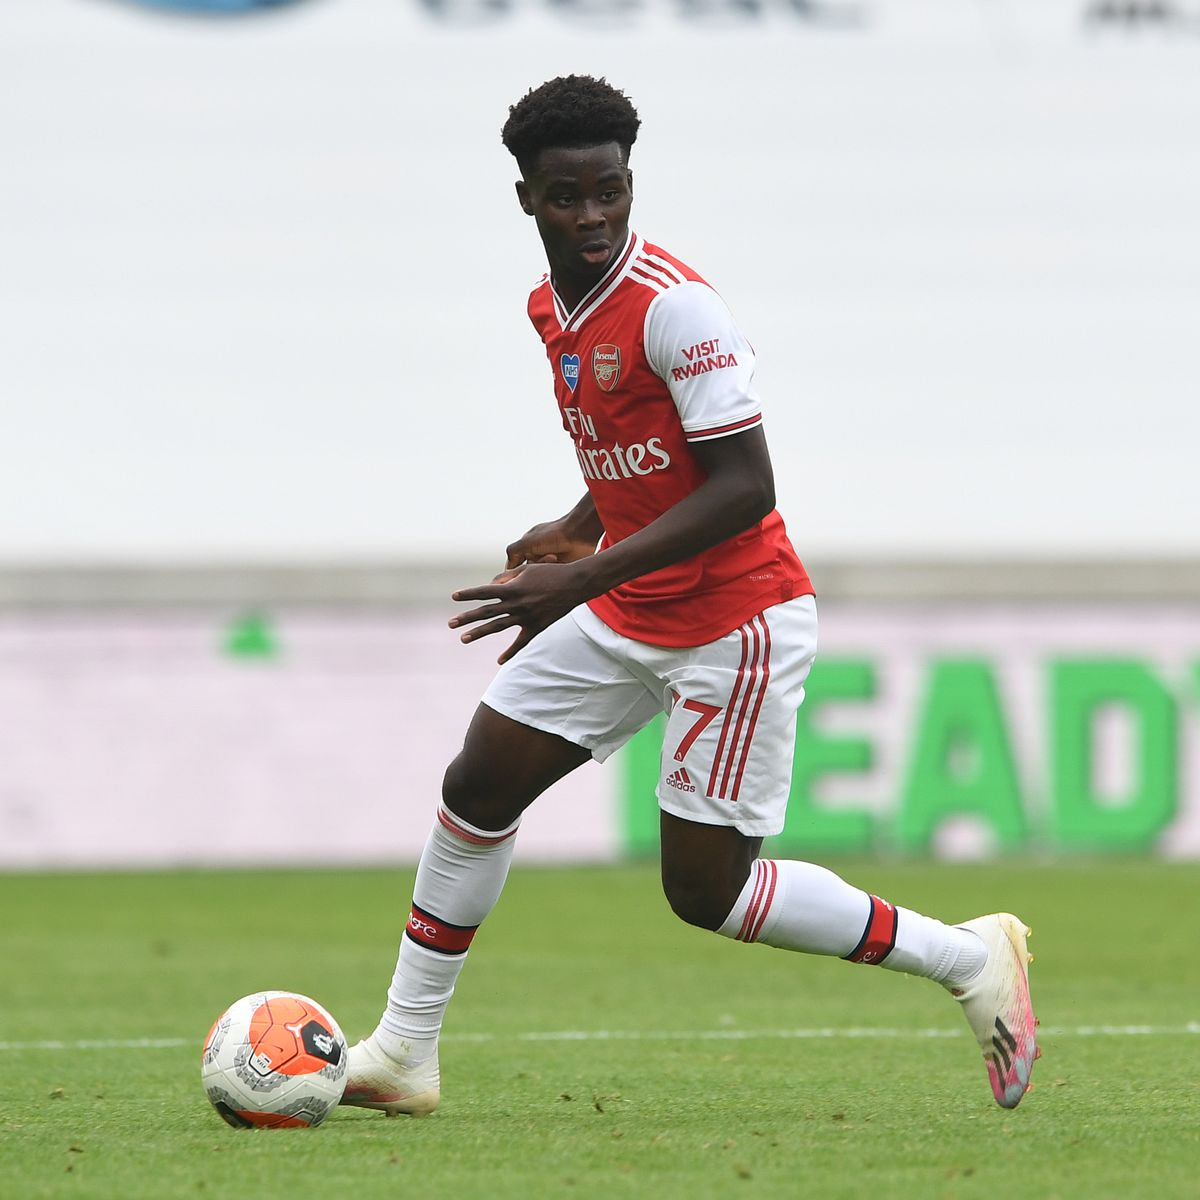 Bukayo Saka Delighted to Get Three Lions' First Call Up